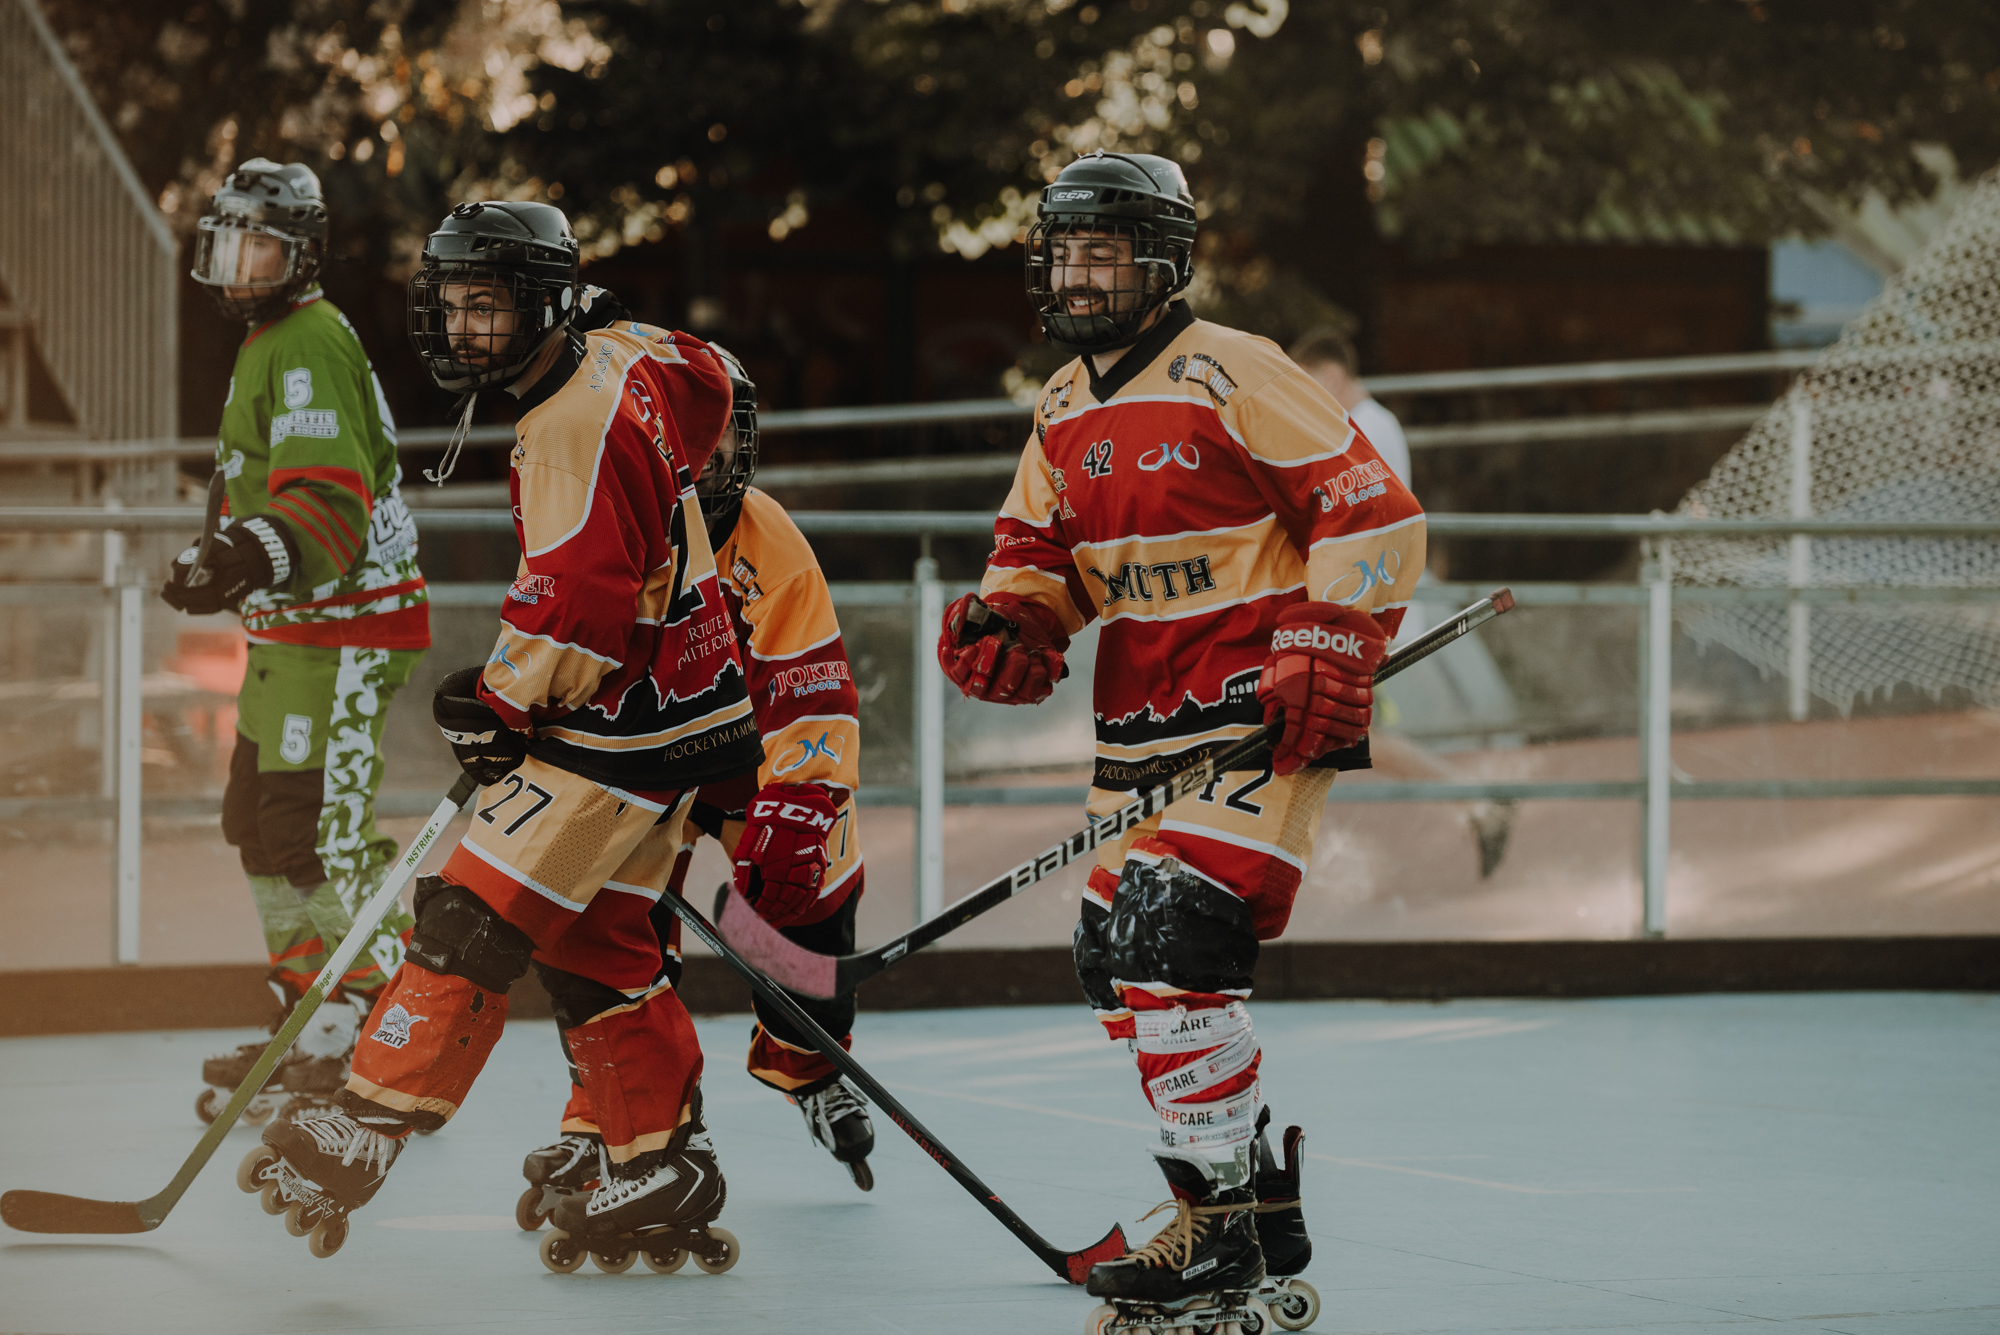 Rita Foldi photo, inline hockey, mammuth roma, hockey mammuth, hockey roma, inline hockey roma, inline roma, sports photography, sports